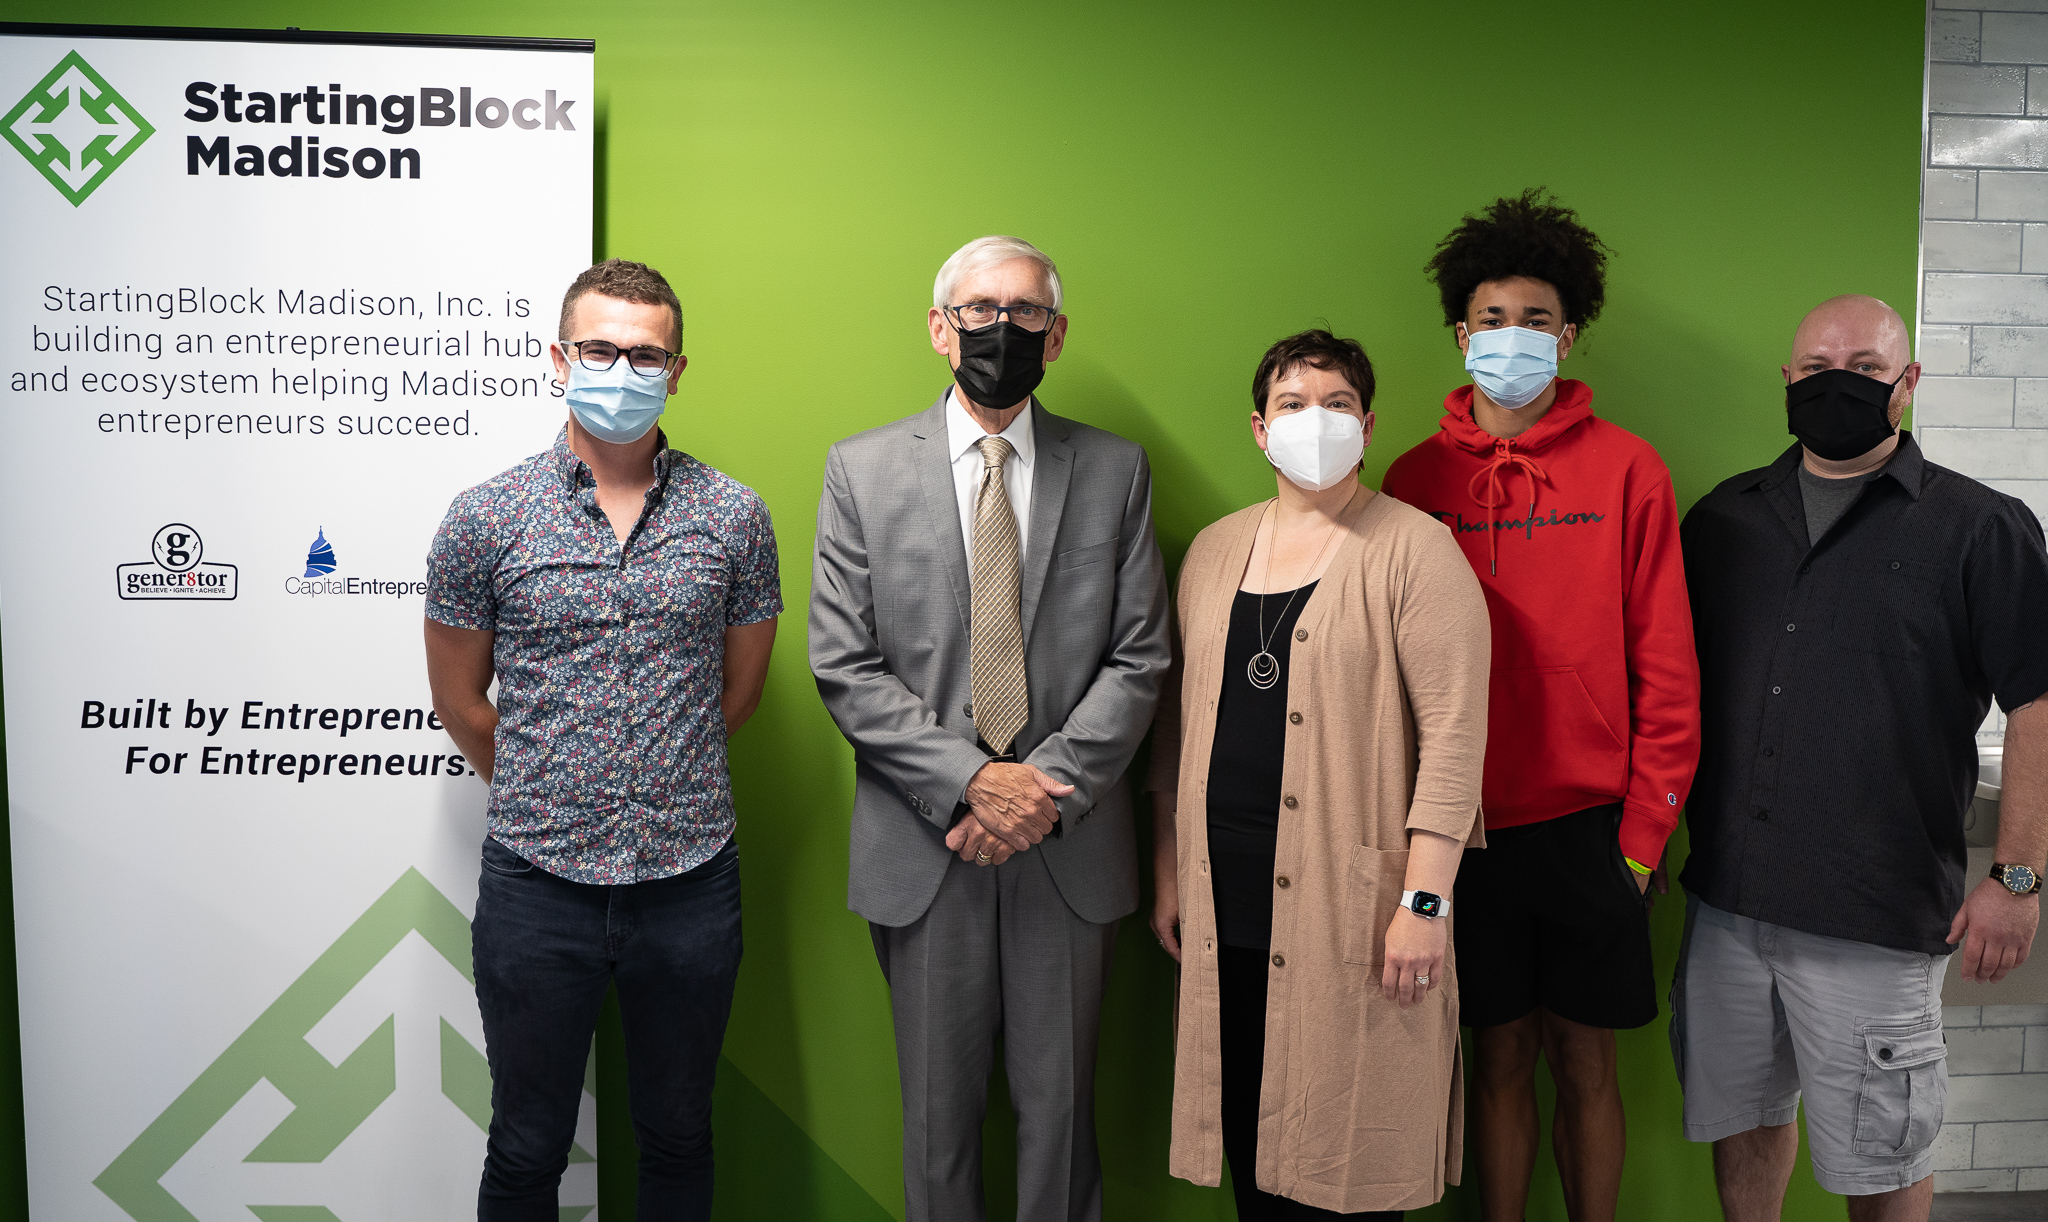 The StartingBlock Team with Governor Evers